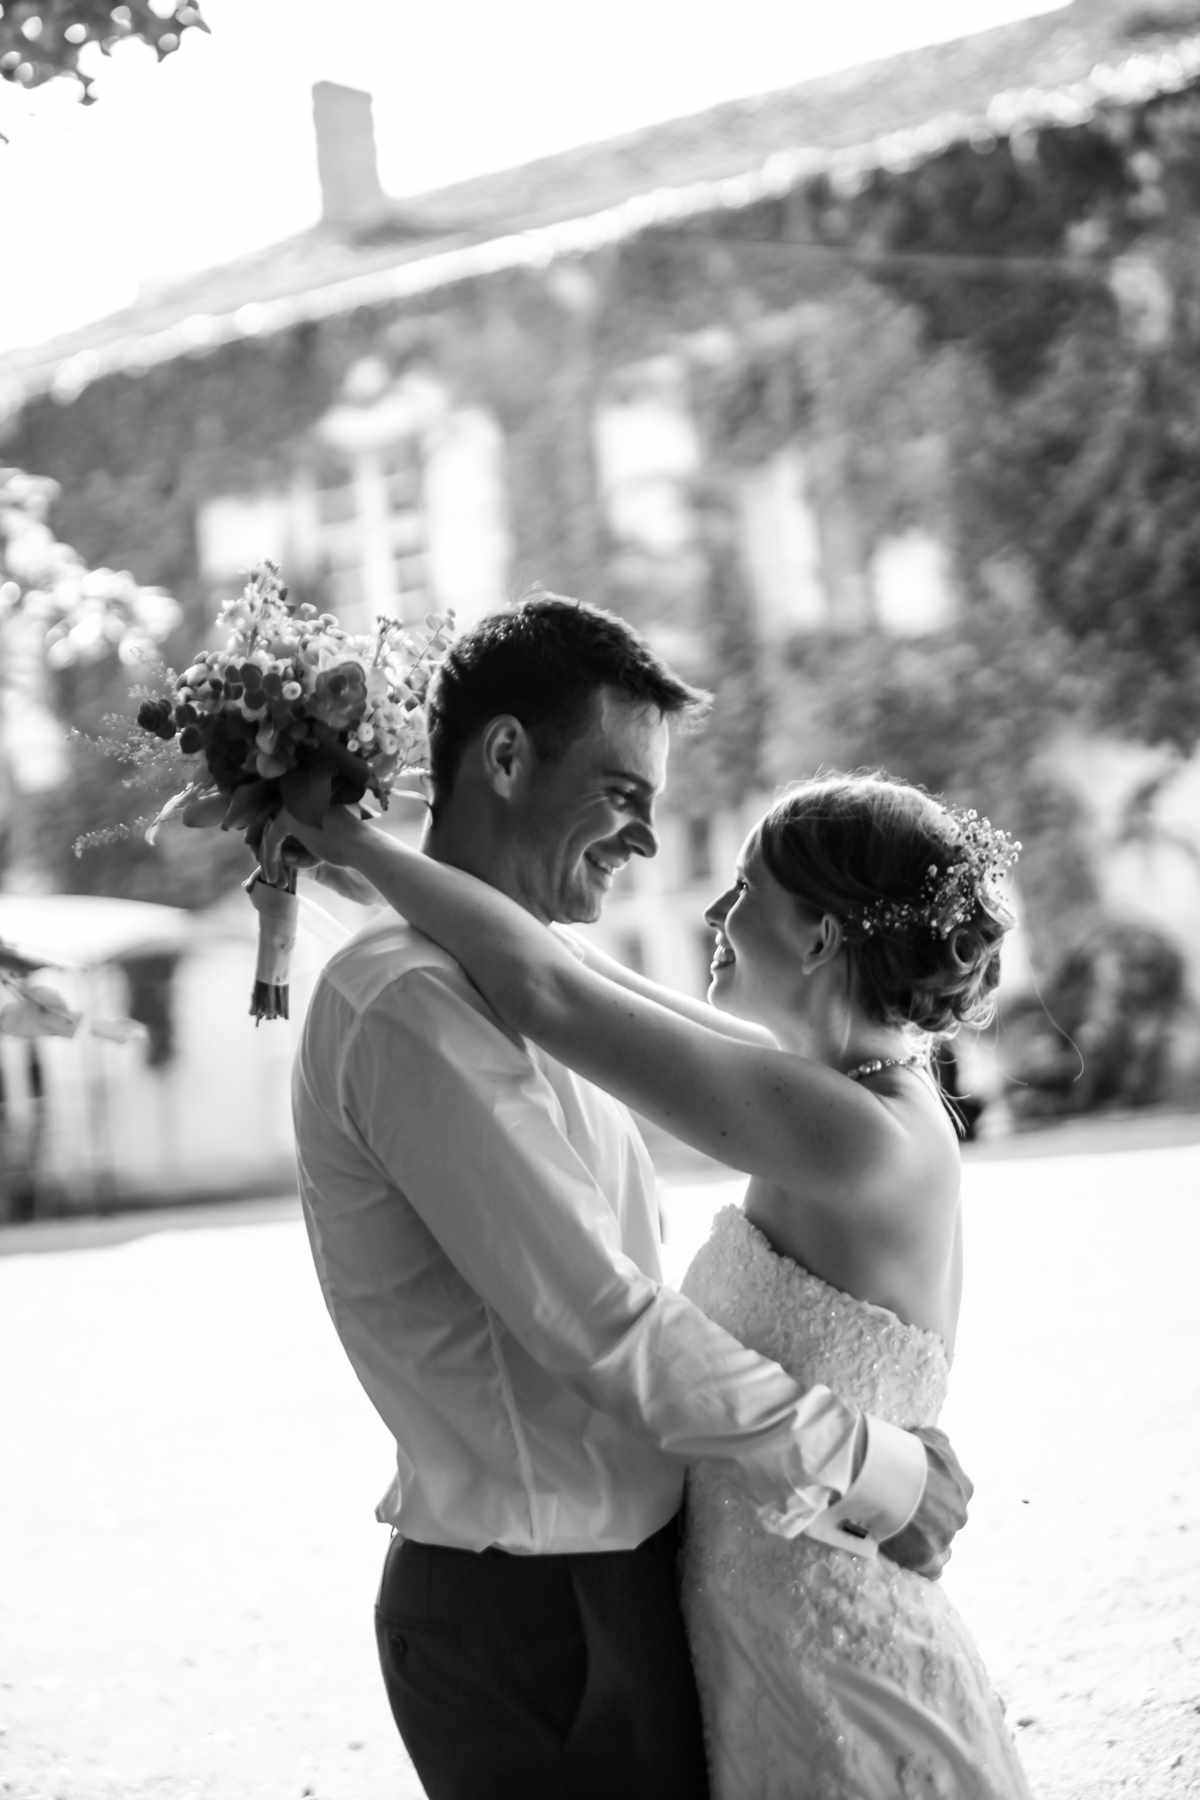 A bride and groom holding to each other. A french wedding shot in artistic black and white.